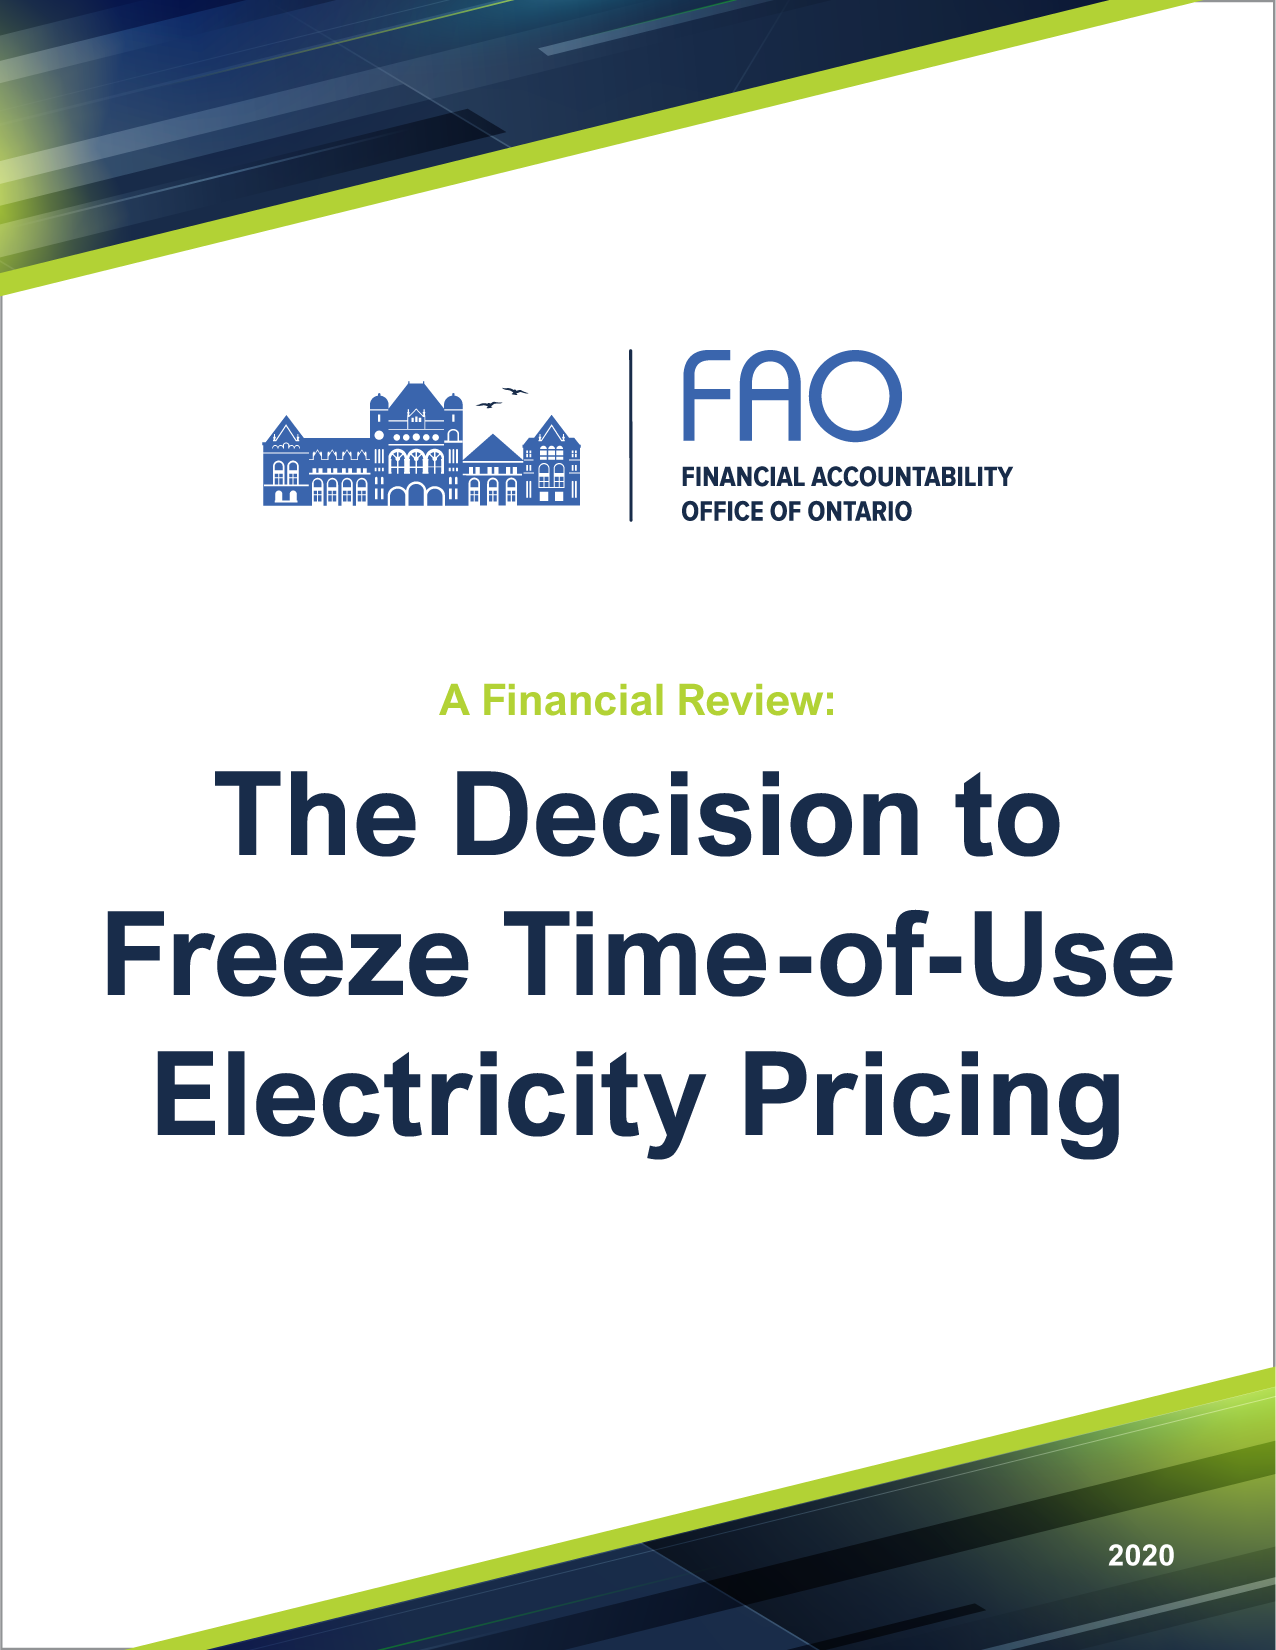 A Financial Review: The Decision to Freeze Time-Of-Use Electricity Pricing